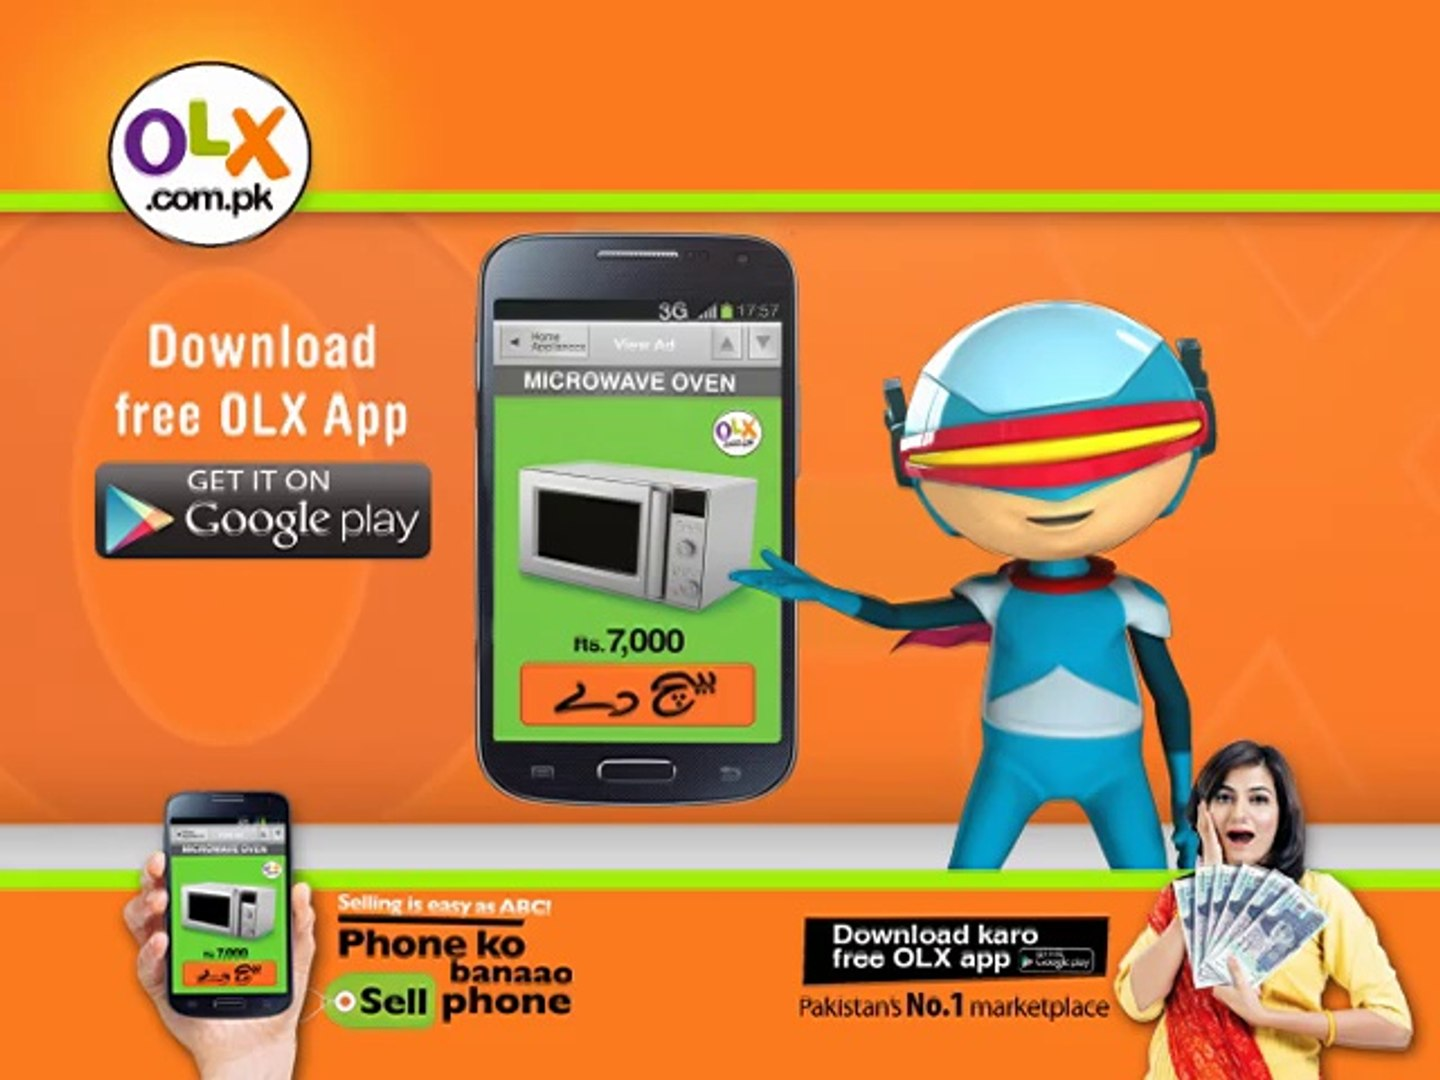 Easy to sell like ABC using OLX New Mobile App